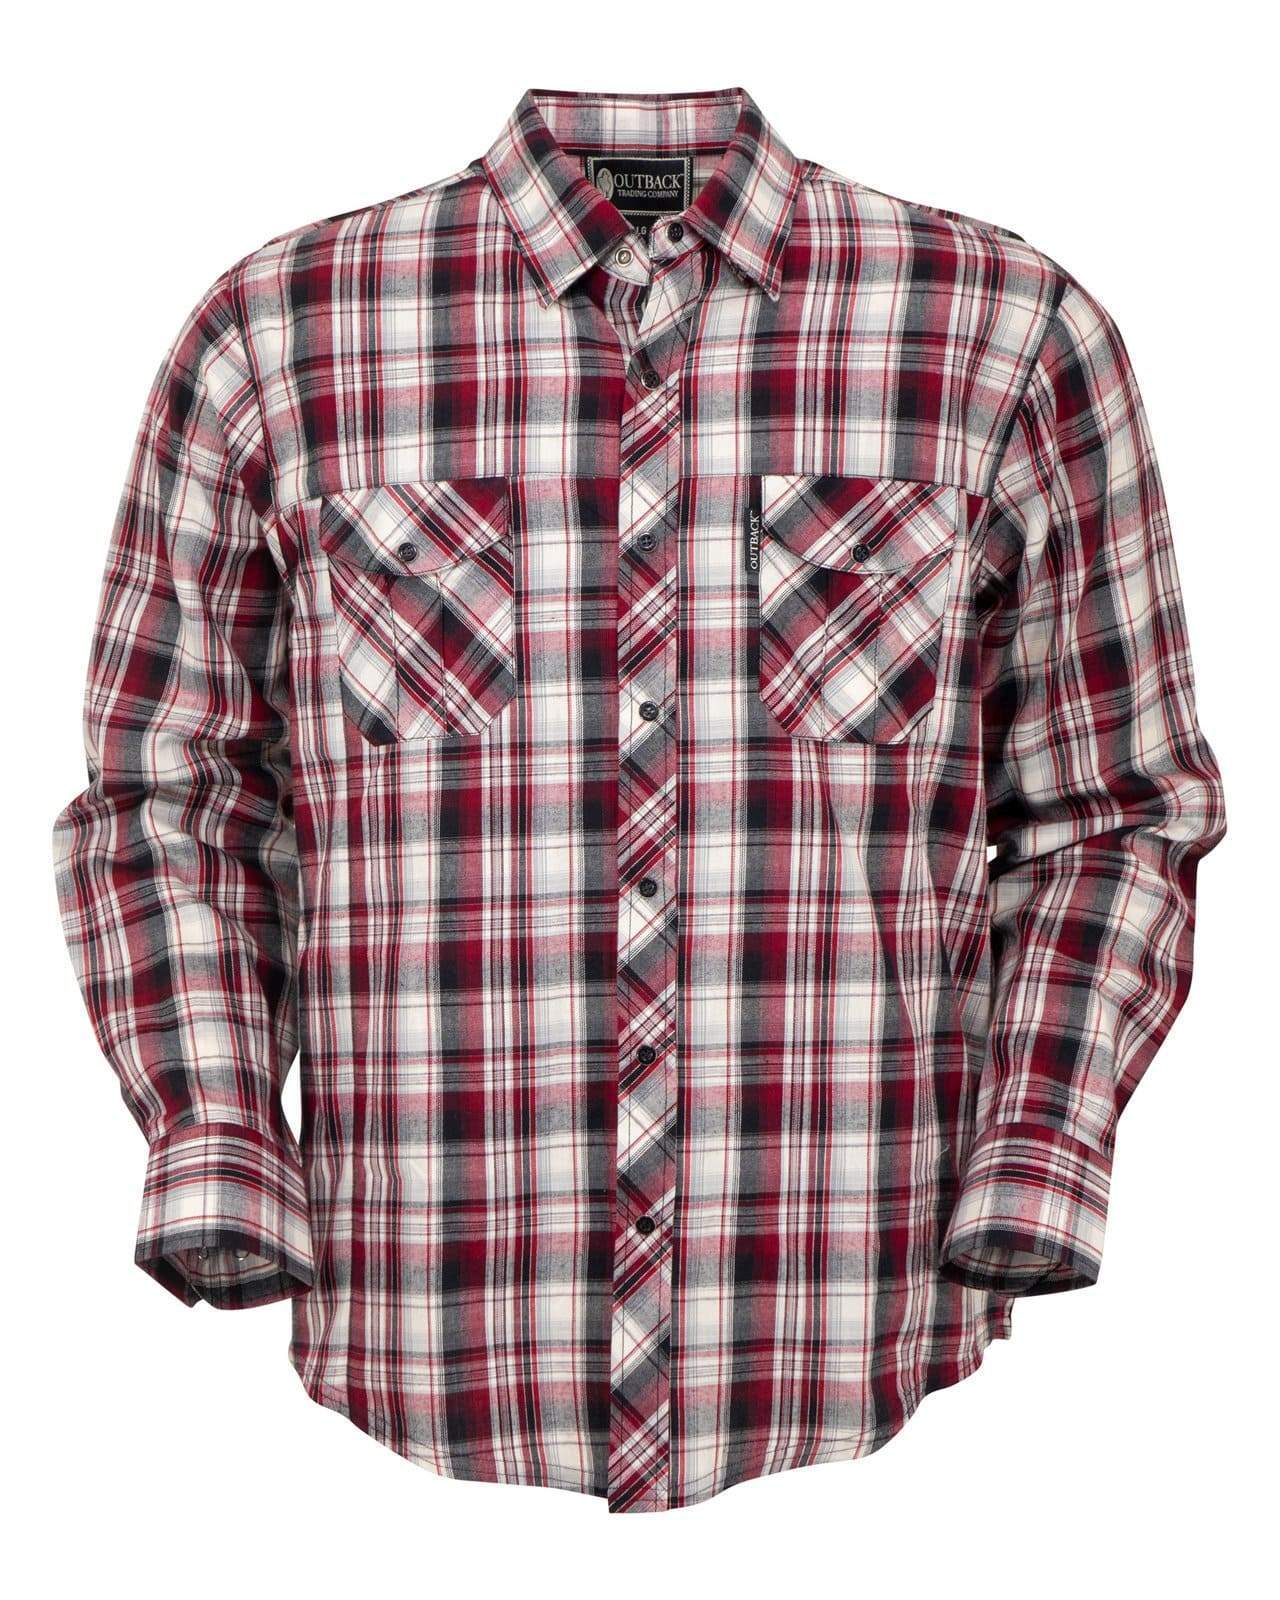 Men's Outback Trading Company Butch Snap Front Shirt #42713-RED